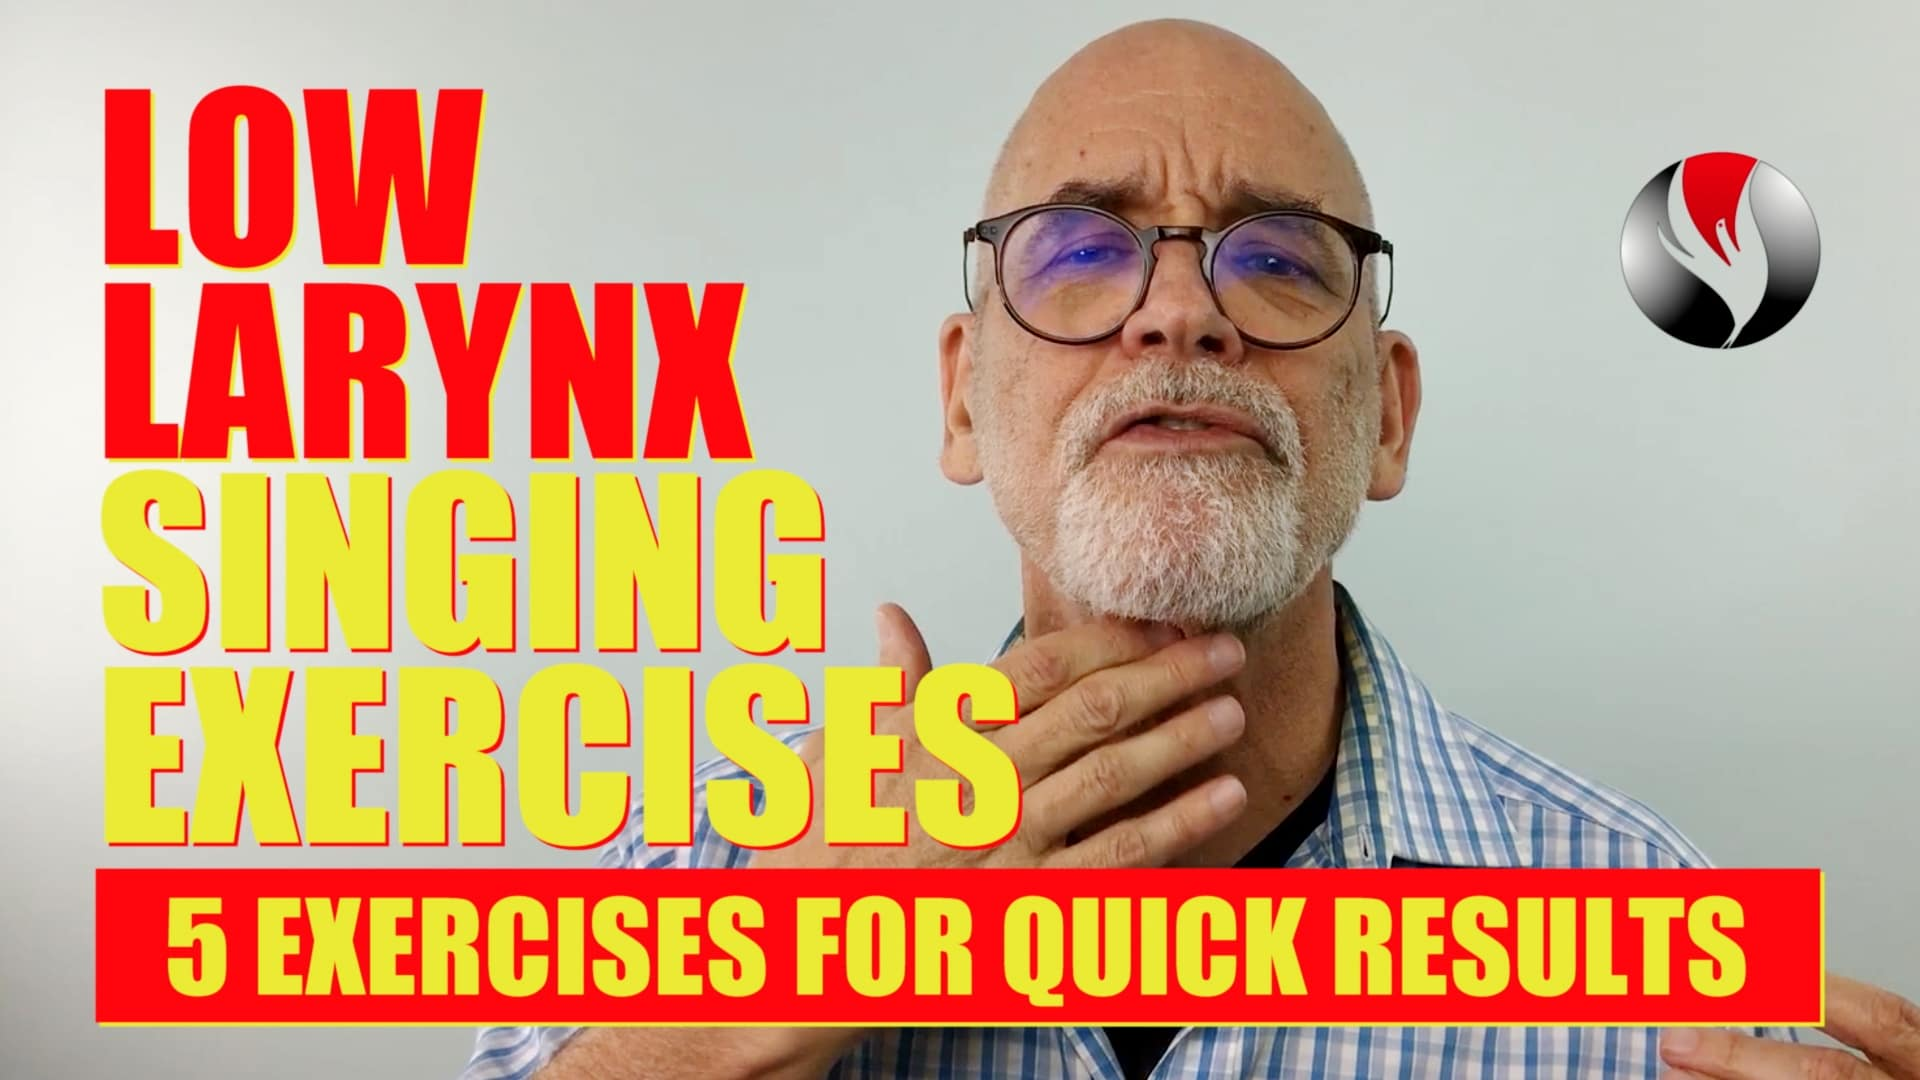 Low Larynx Singing Exercises – 5 Simple Exercises for Quick Results